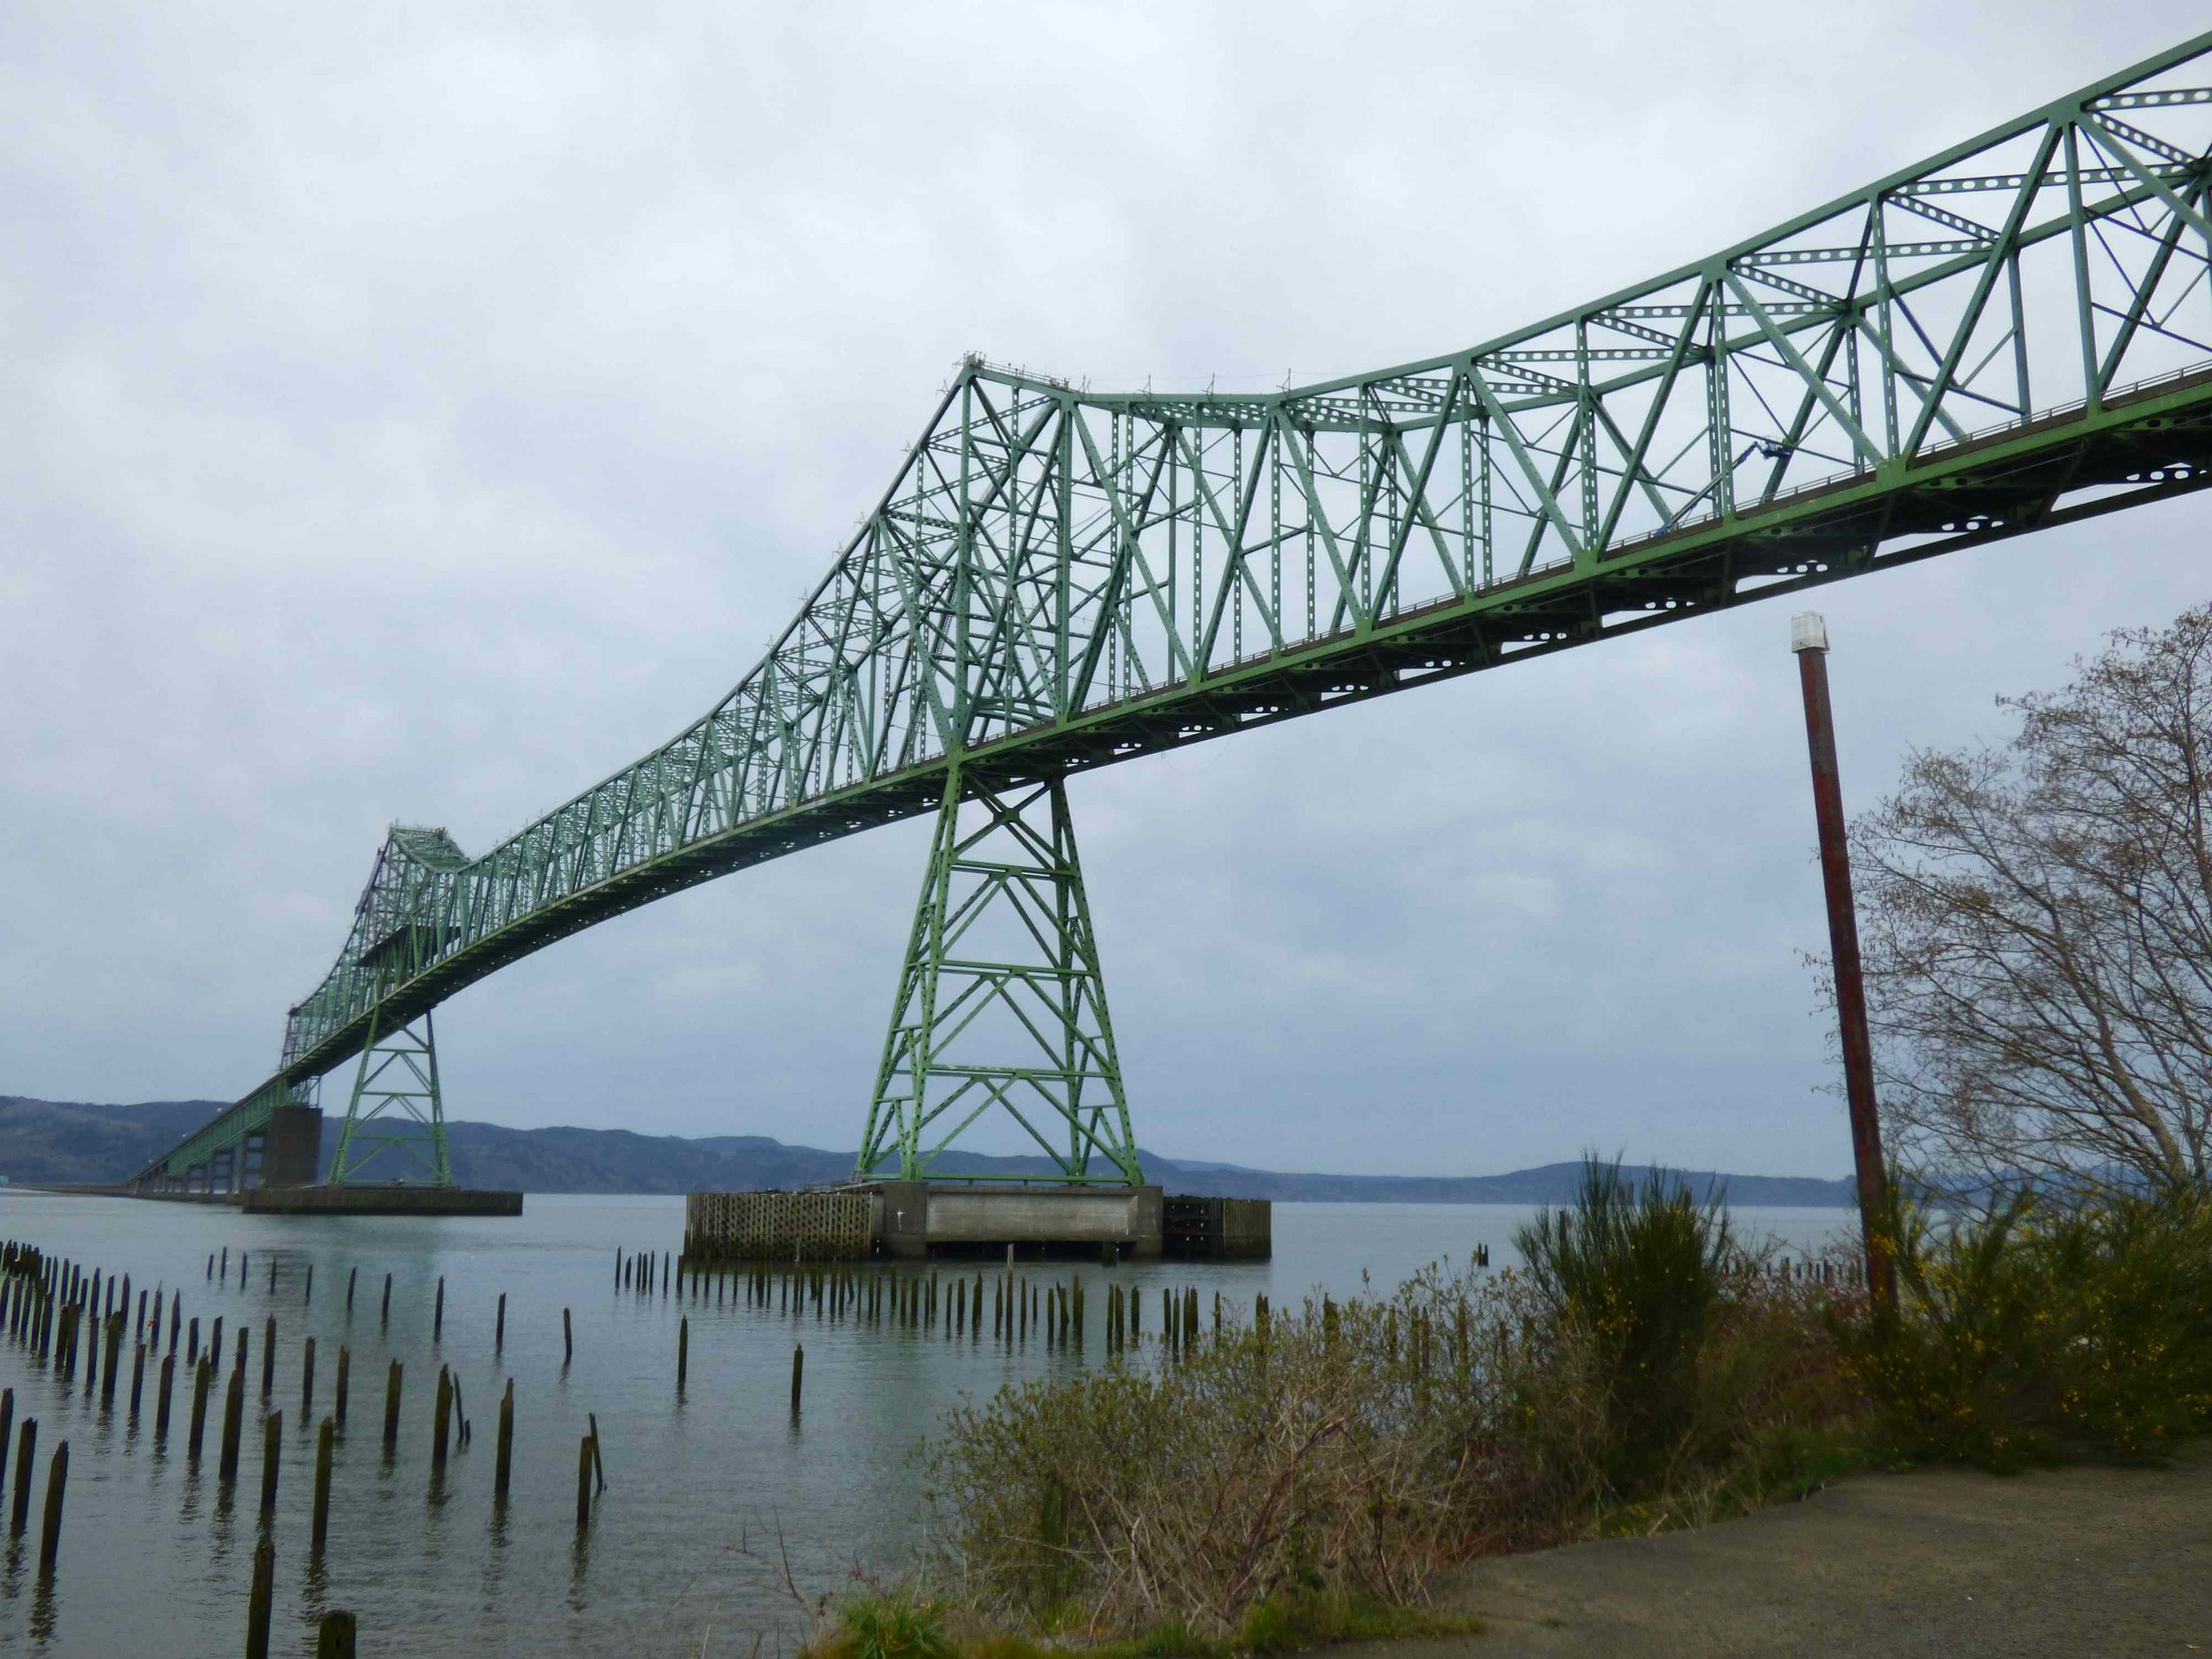 Astoria-Megler Bridge. There were so many bridges on the Columbia river.